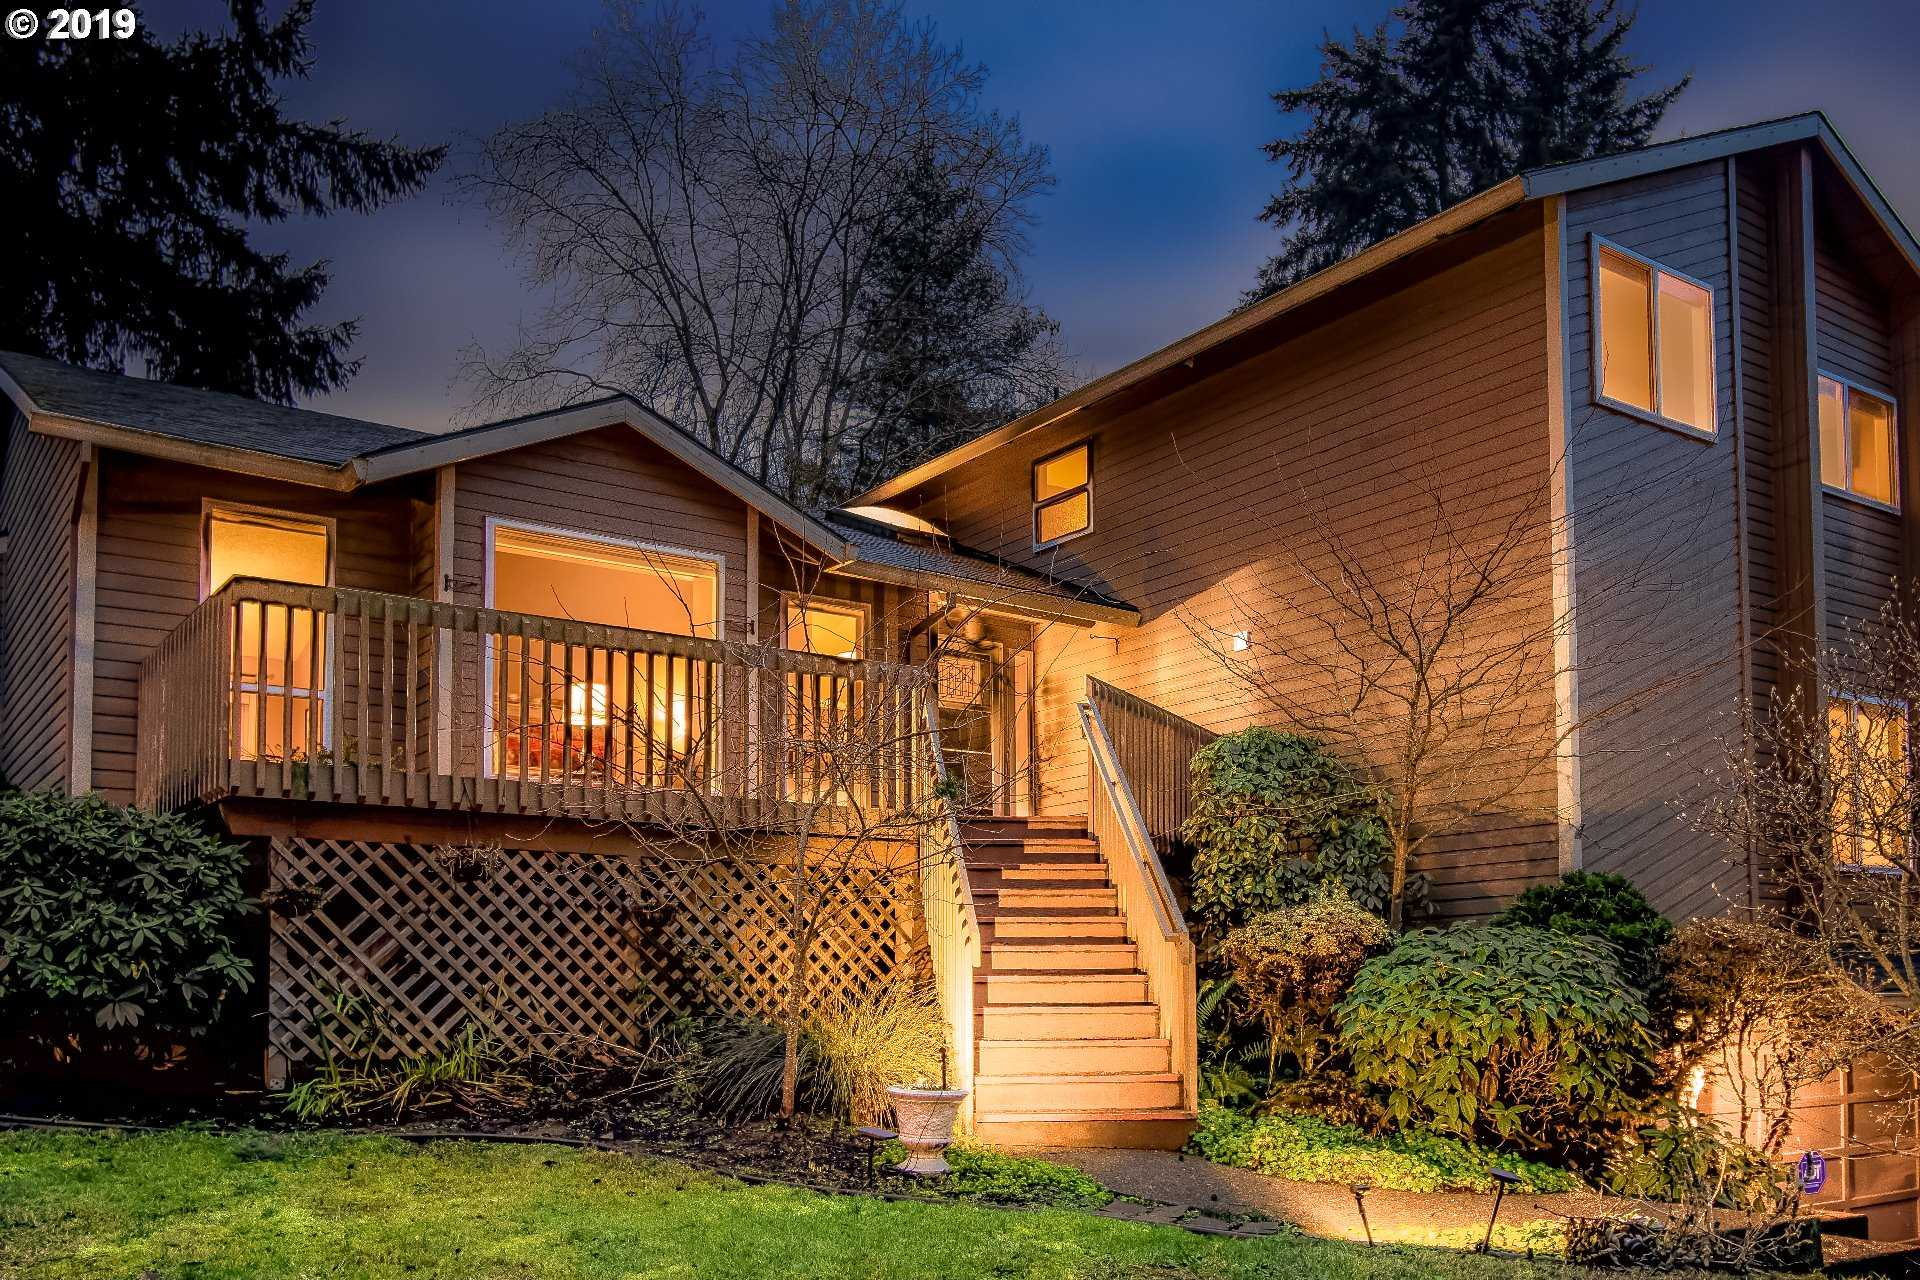 $499,900 - 4Br/3Ba -  for Sale in West Linn